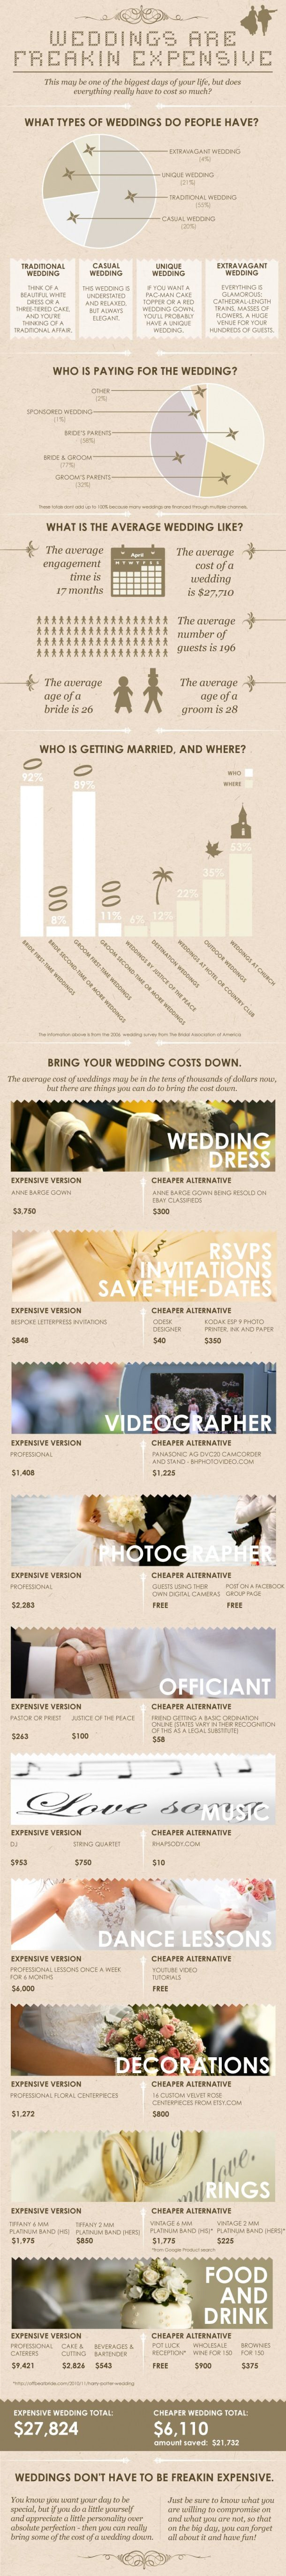 Cheaper tricks to make your wedding less expensive